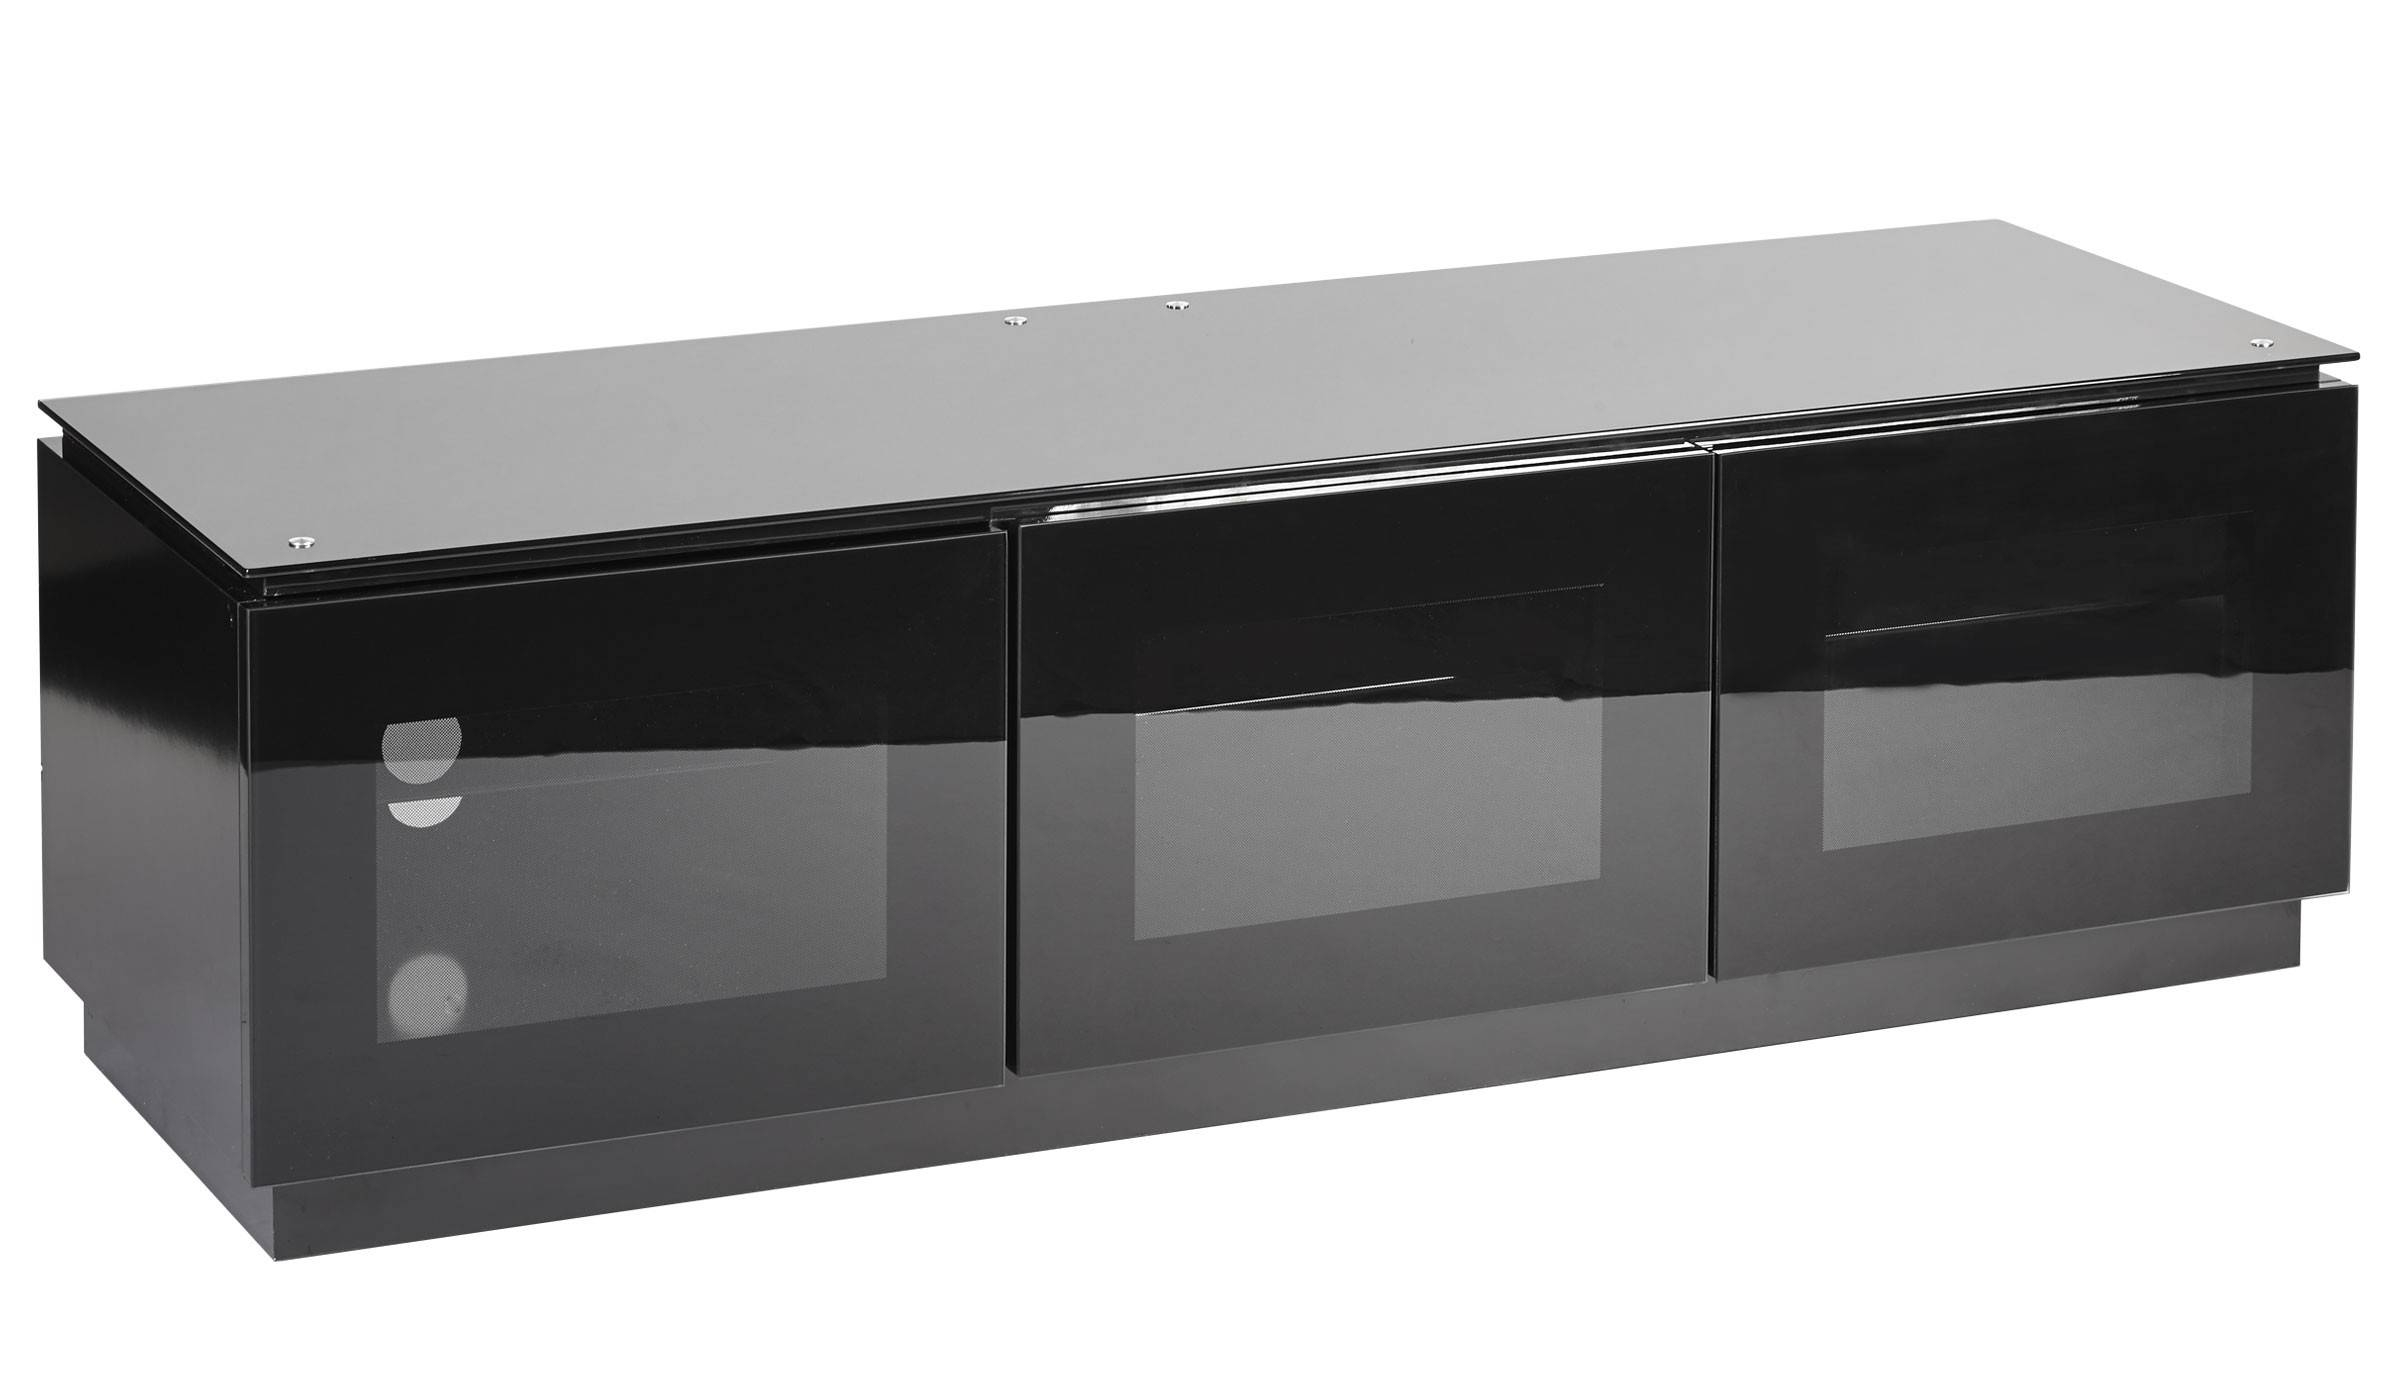 Black Gloss Tv Unit Up To 65 Inch Flat Tv | Mmt D1500 Within Black Gloss Tv Cabinet (View 3 of 15)